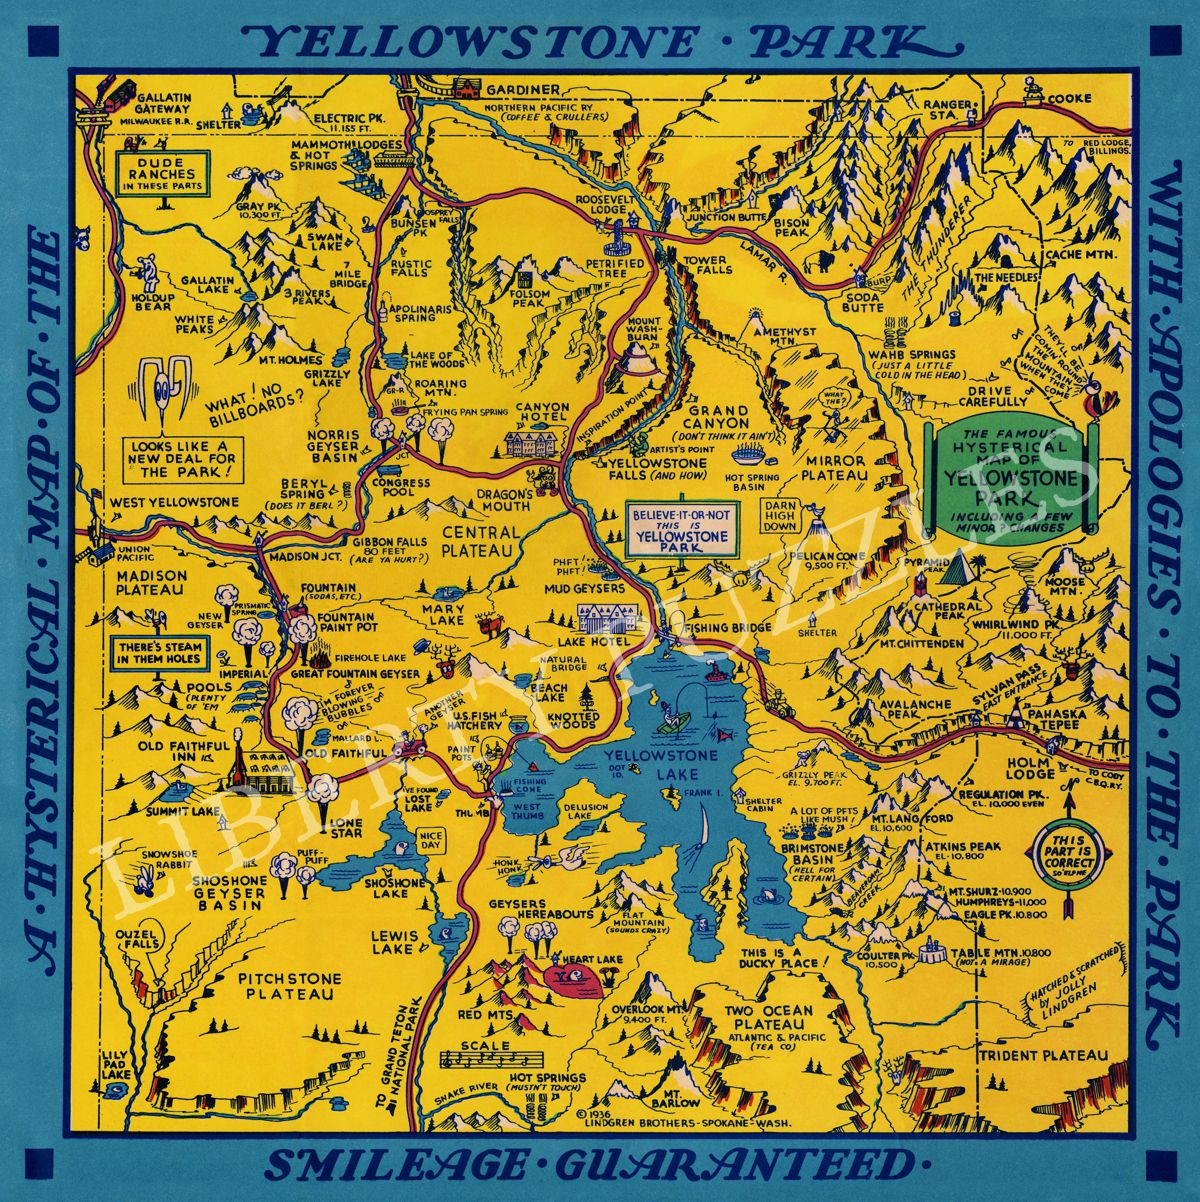 Hysterical Map of Yellowstone Park